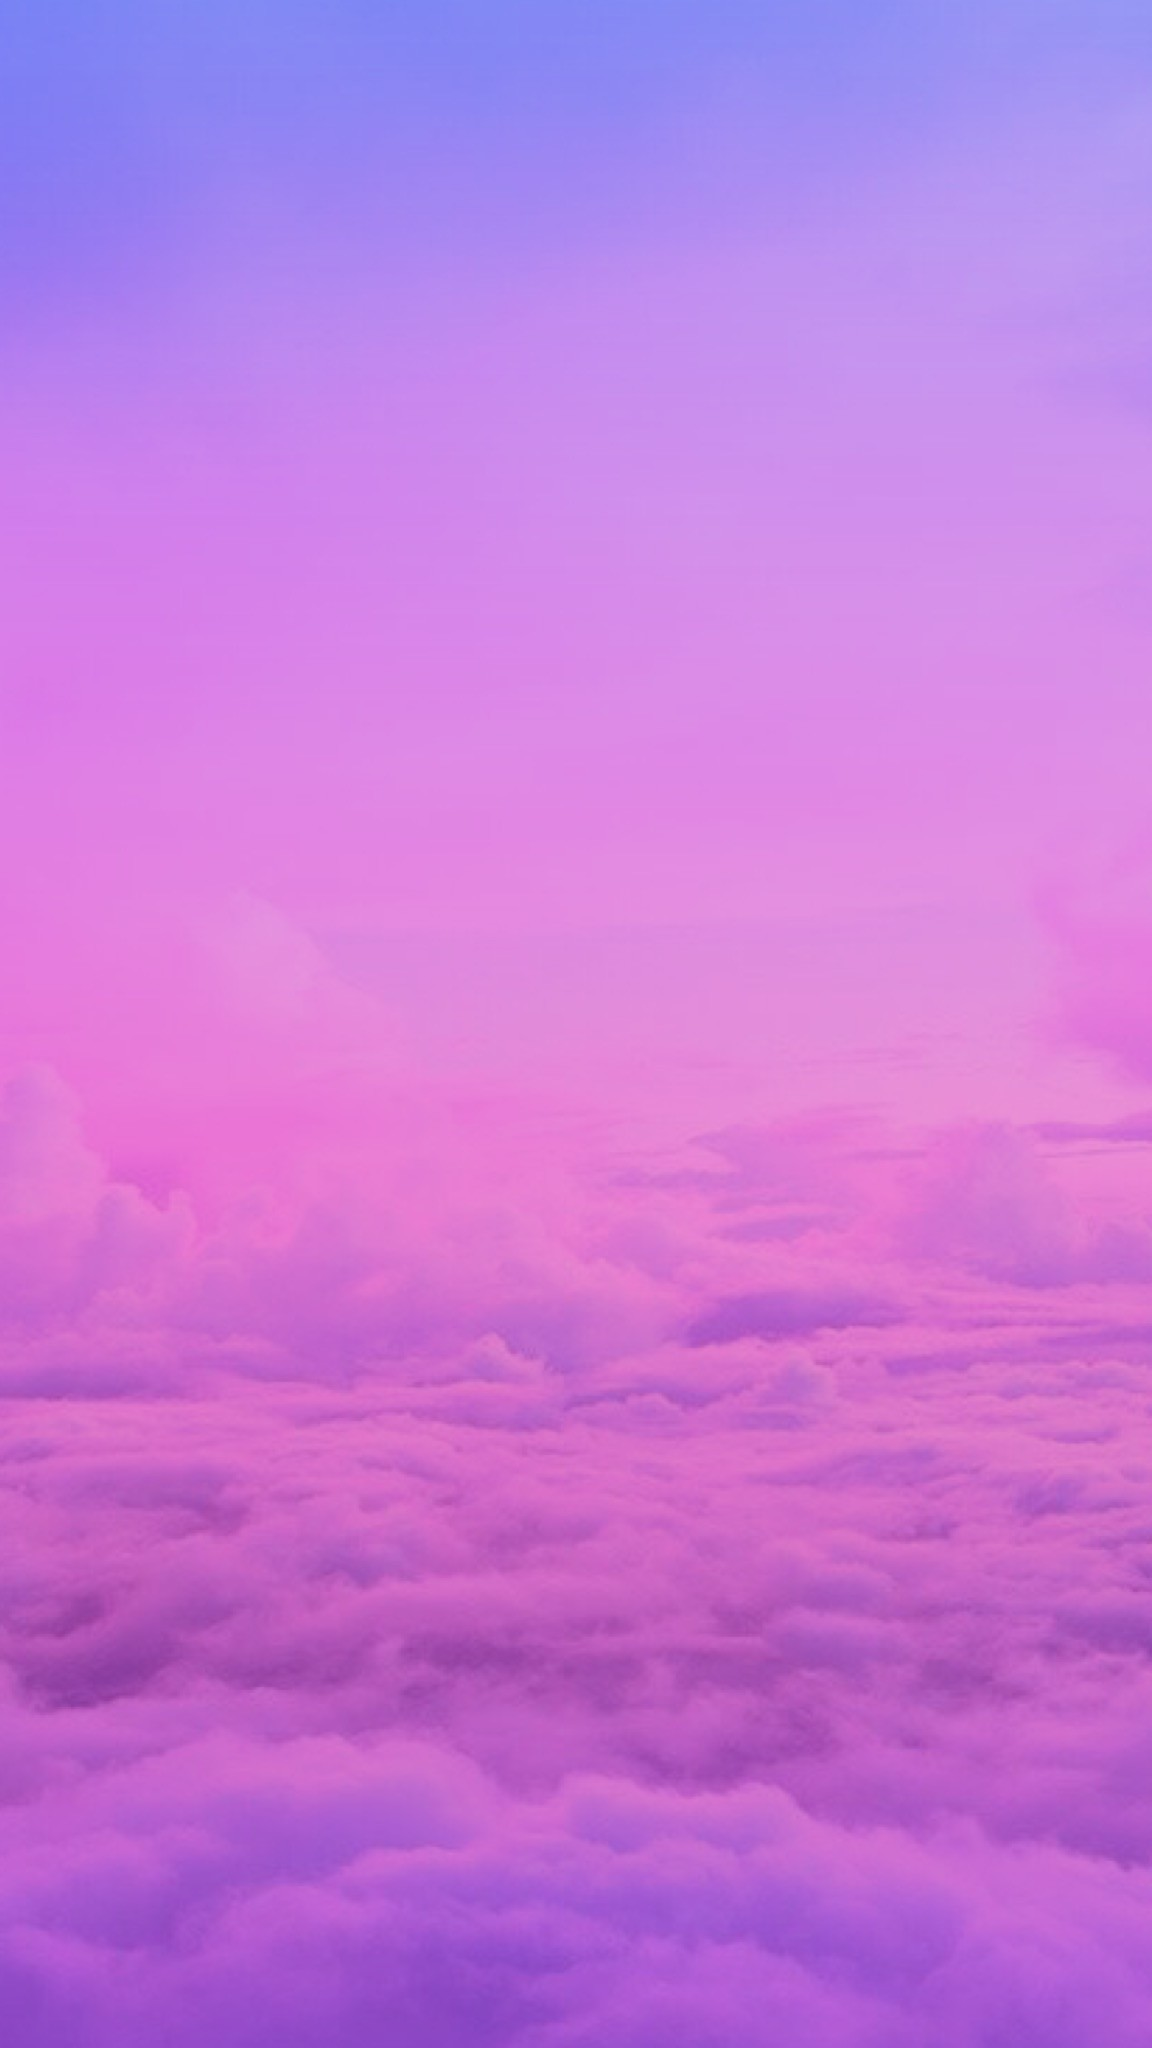 Pink Ombre Wallpaper 60 images 1152x2048